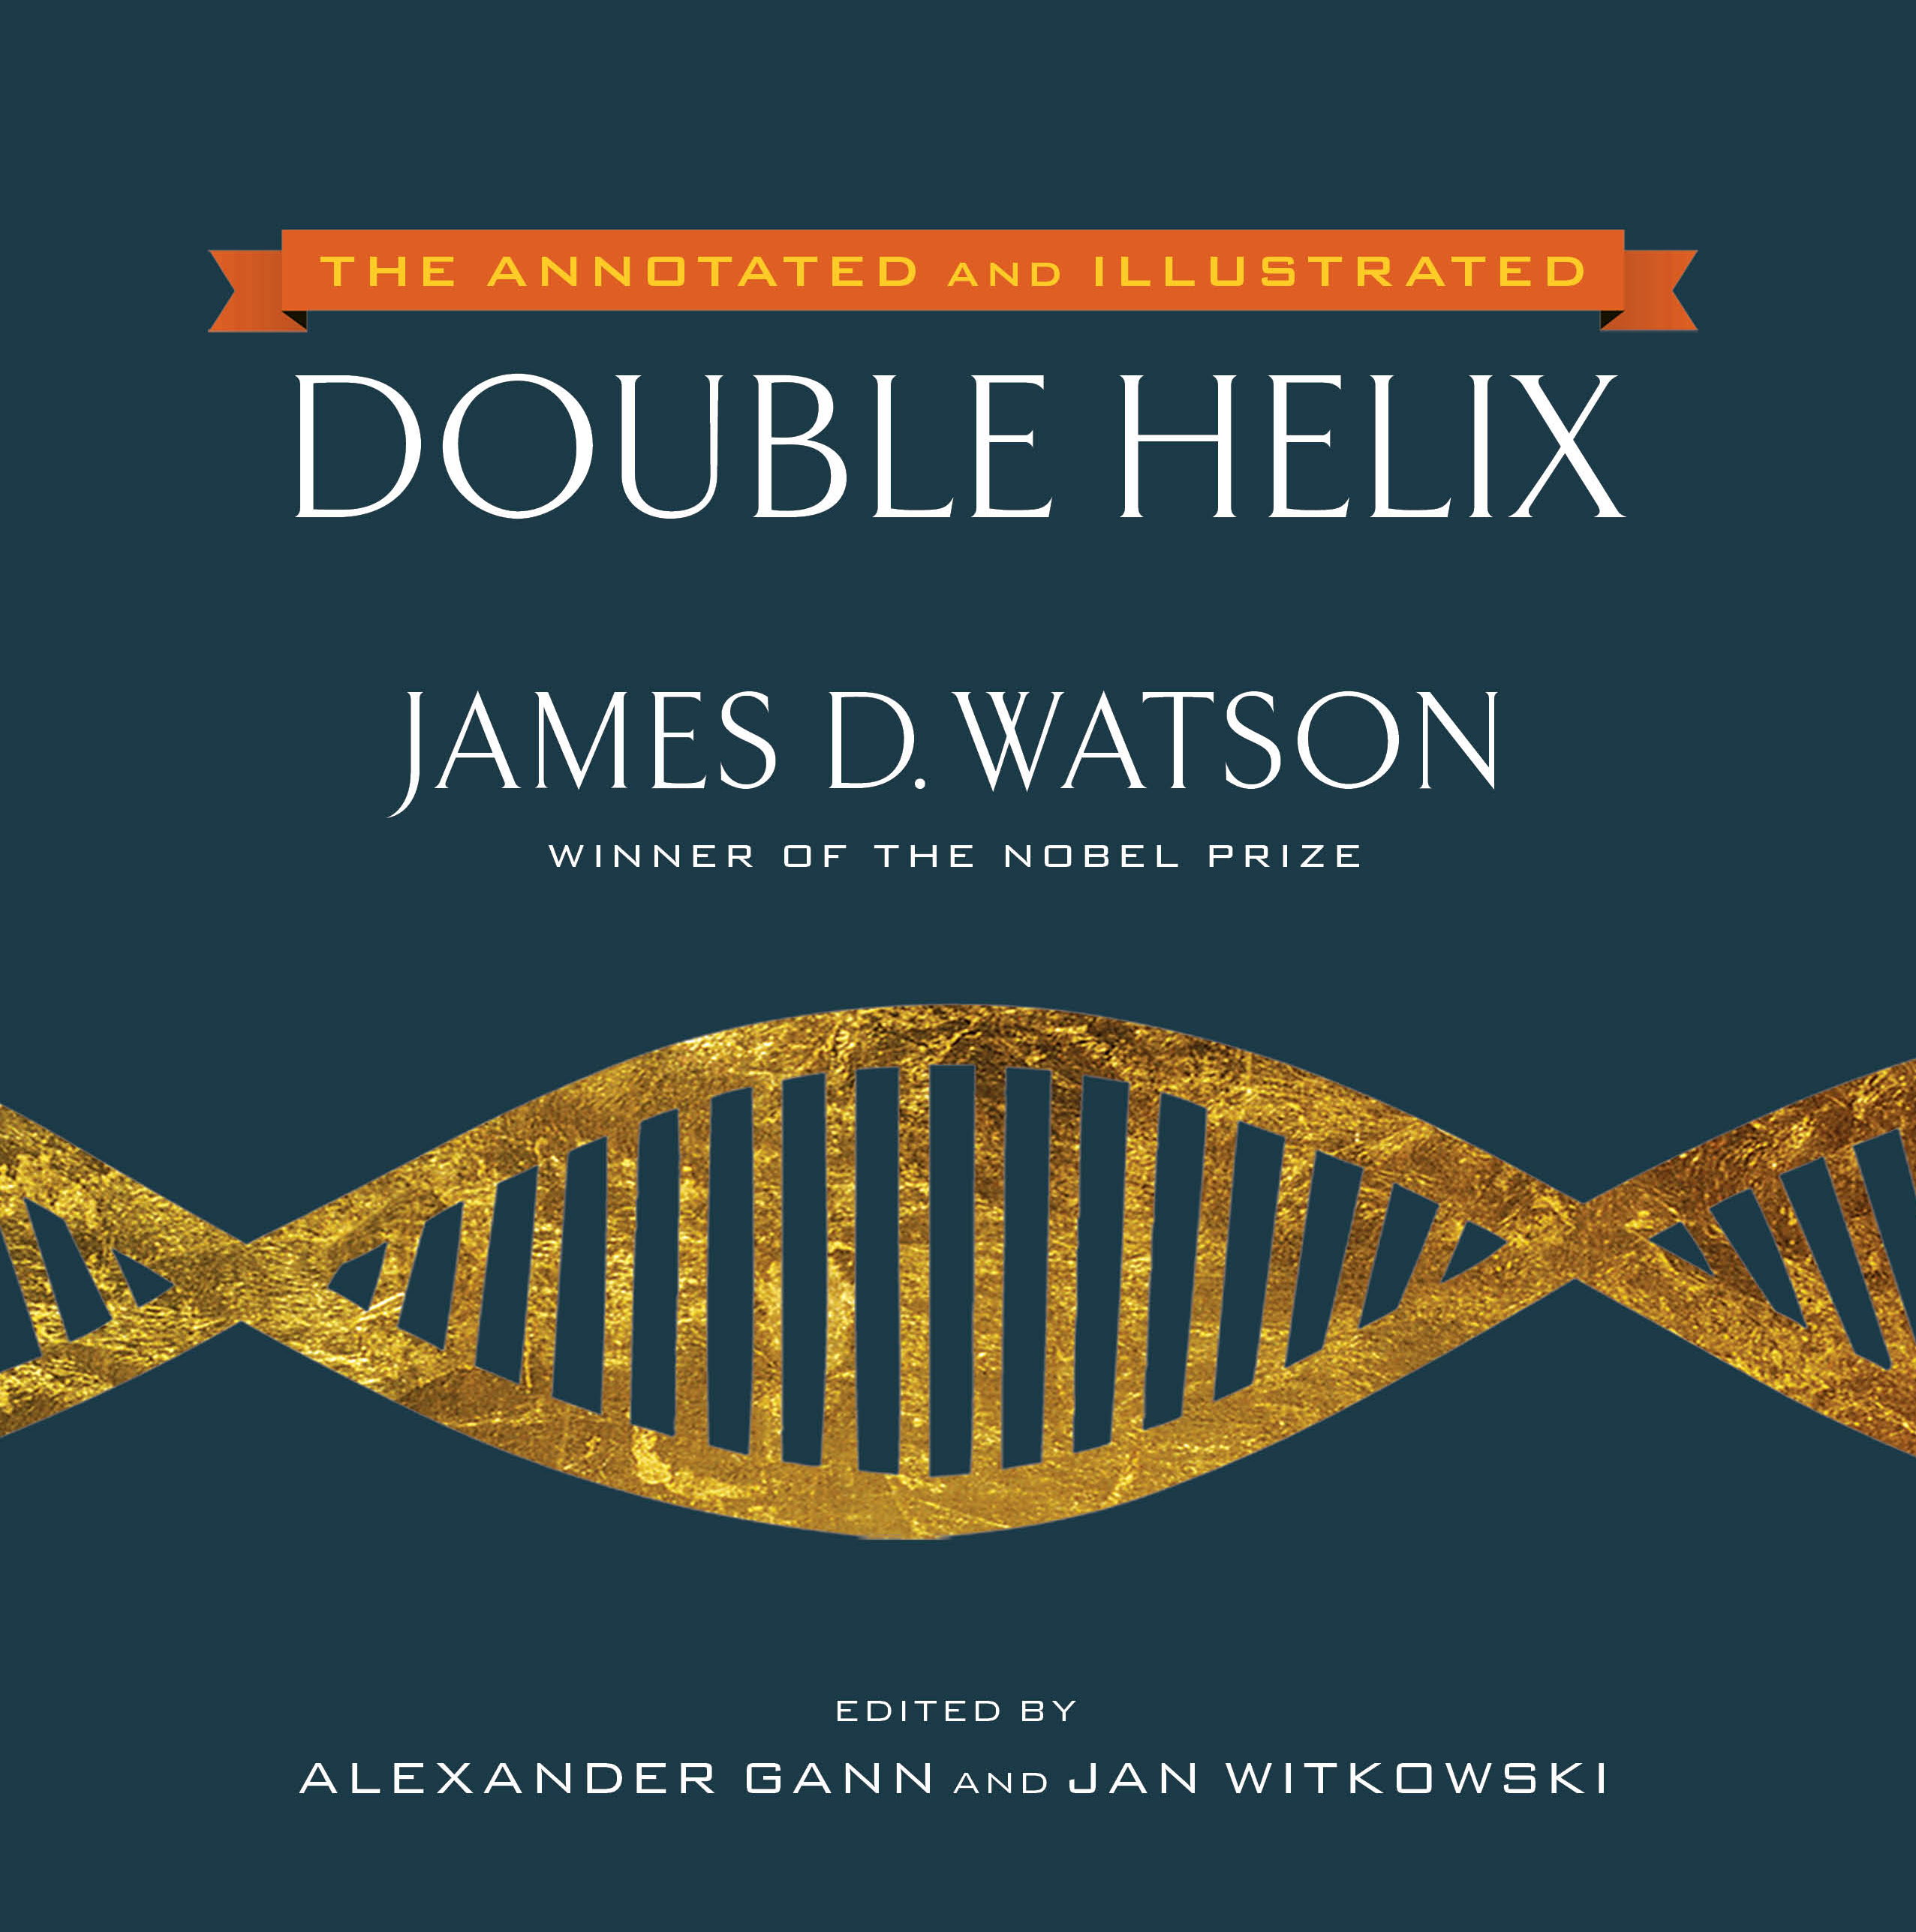 an analysis of the double helix by james watson One of the more iconic shapes in science, or perhaps the 20th century as a whole – is the double helix the shape of dna, discovered in 1953 by francis crick and james watson (with due credit to maurice wilkins and rosalind franklin), was a critical milestone in understanding the human genome and served as the starting point for.